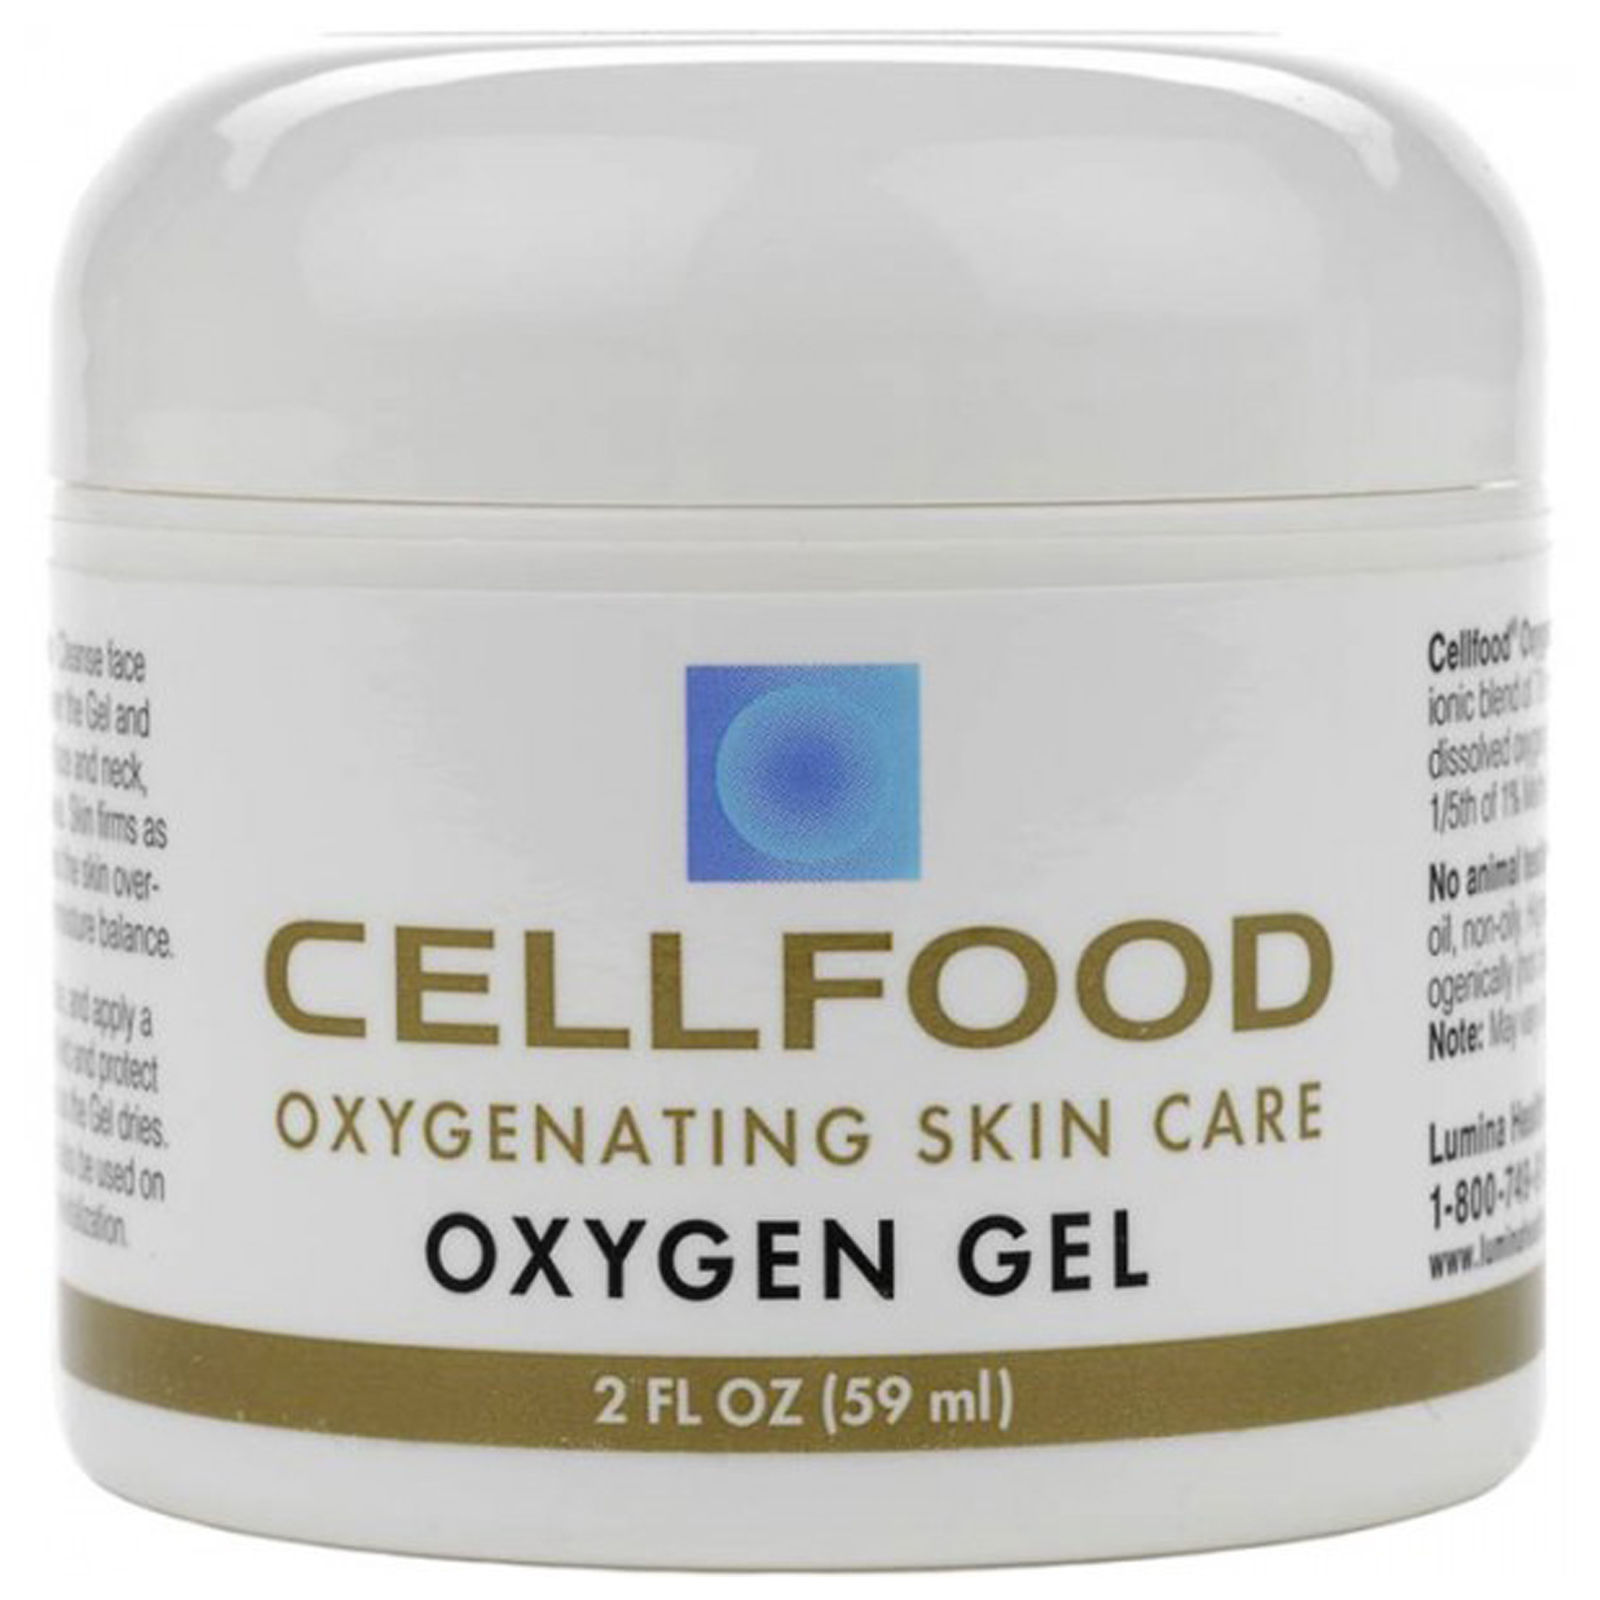 Cellfood Oxygen Gel 2 fl.oz Jar of Oxygenating Skin Care Gel by Lumina Health